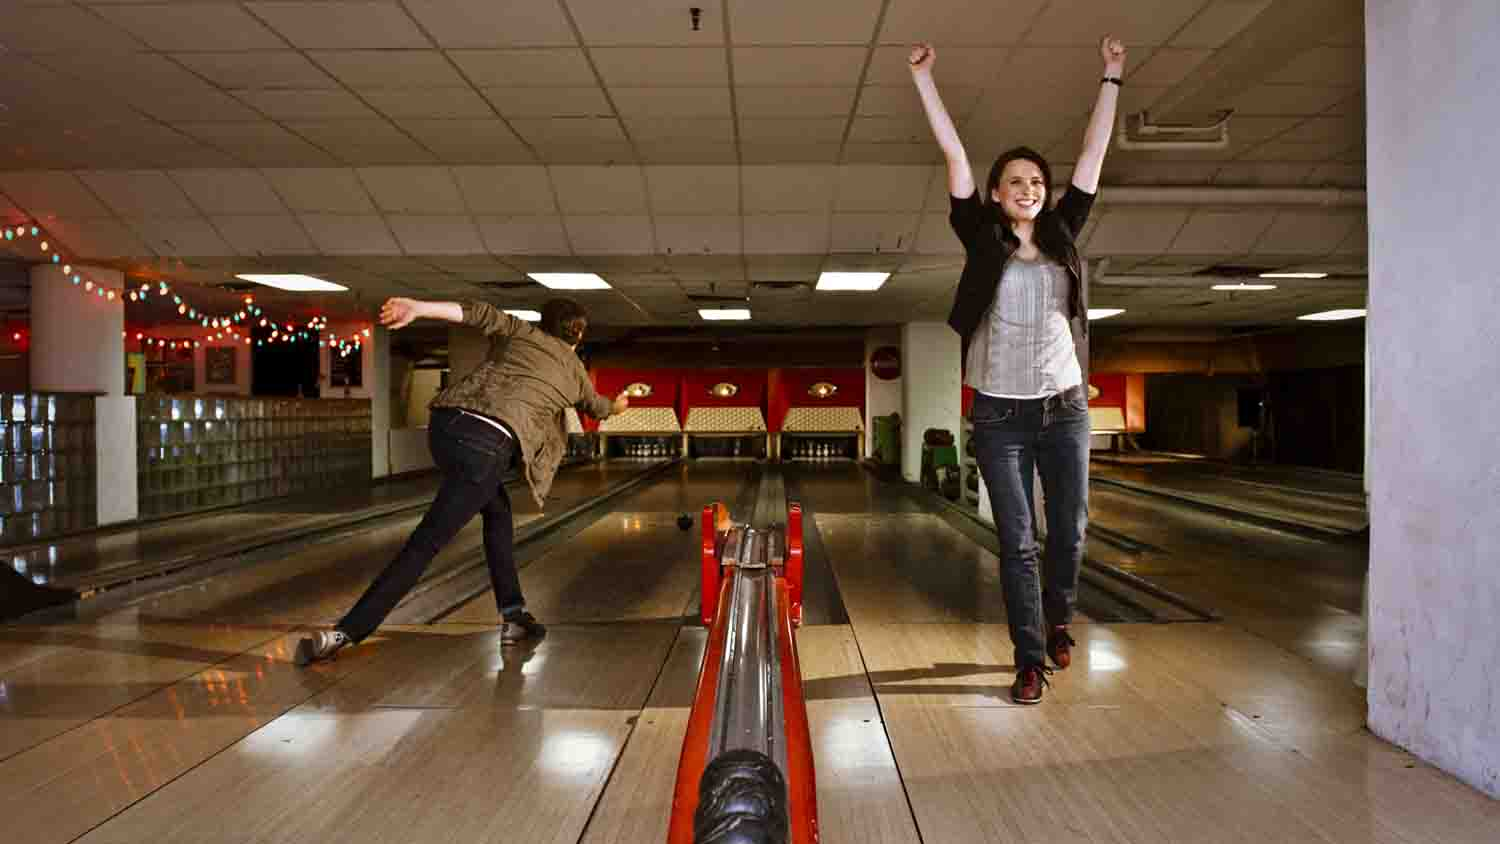 Duckpin Bowling in Fountain Square